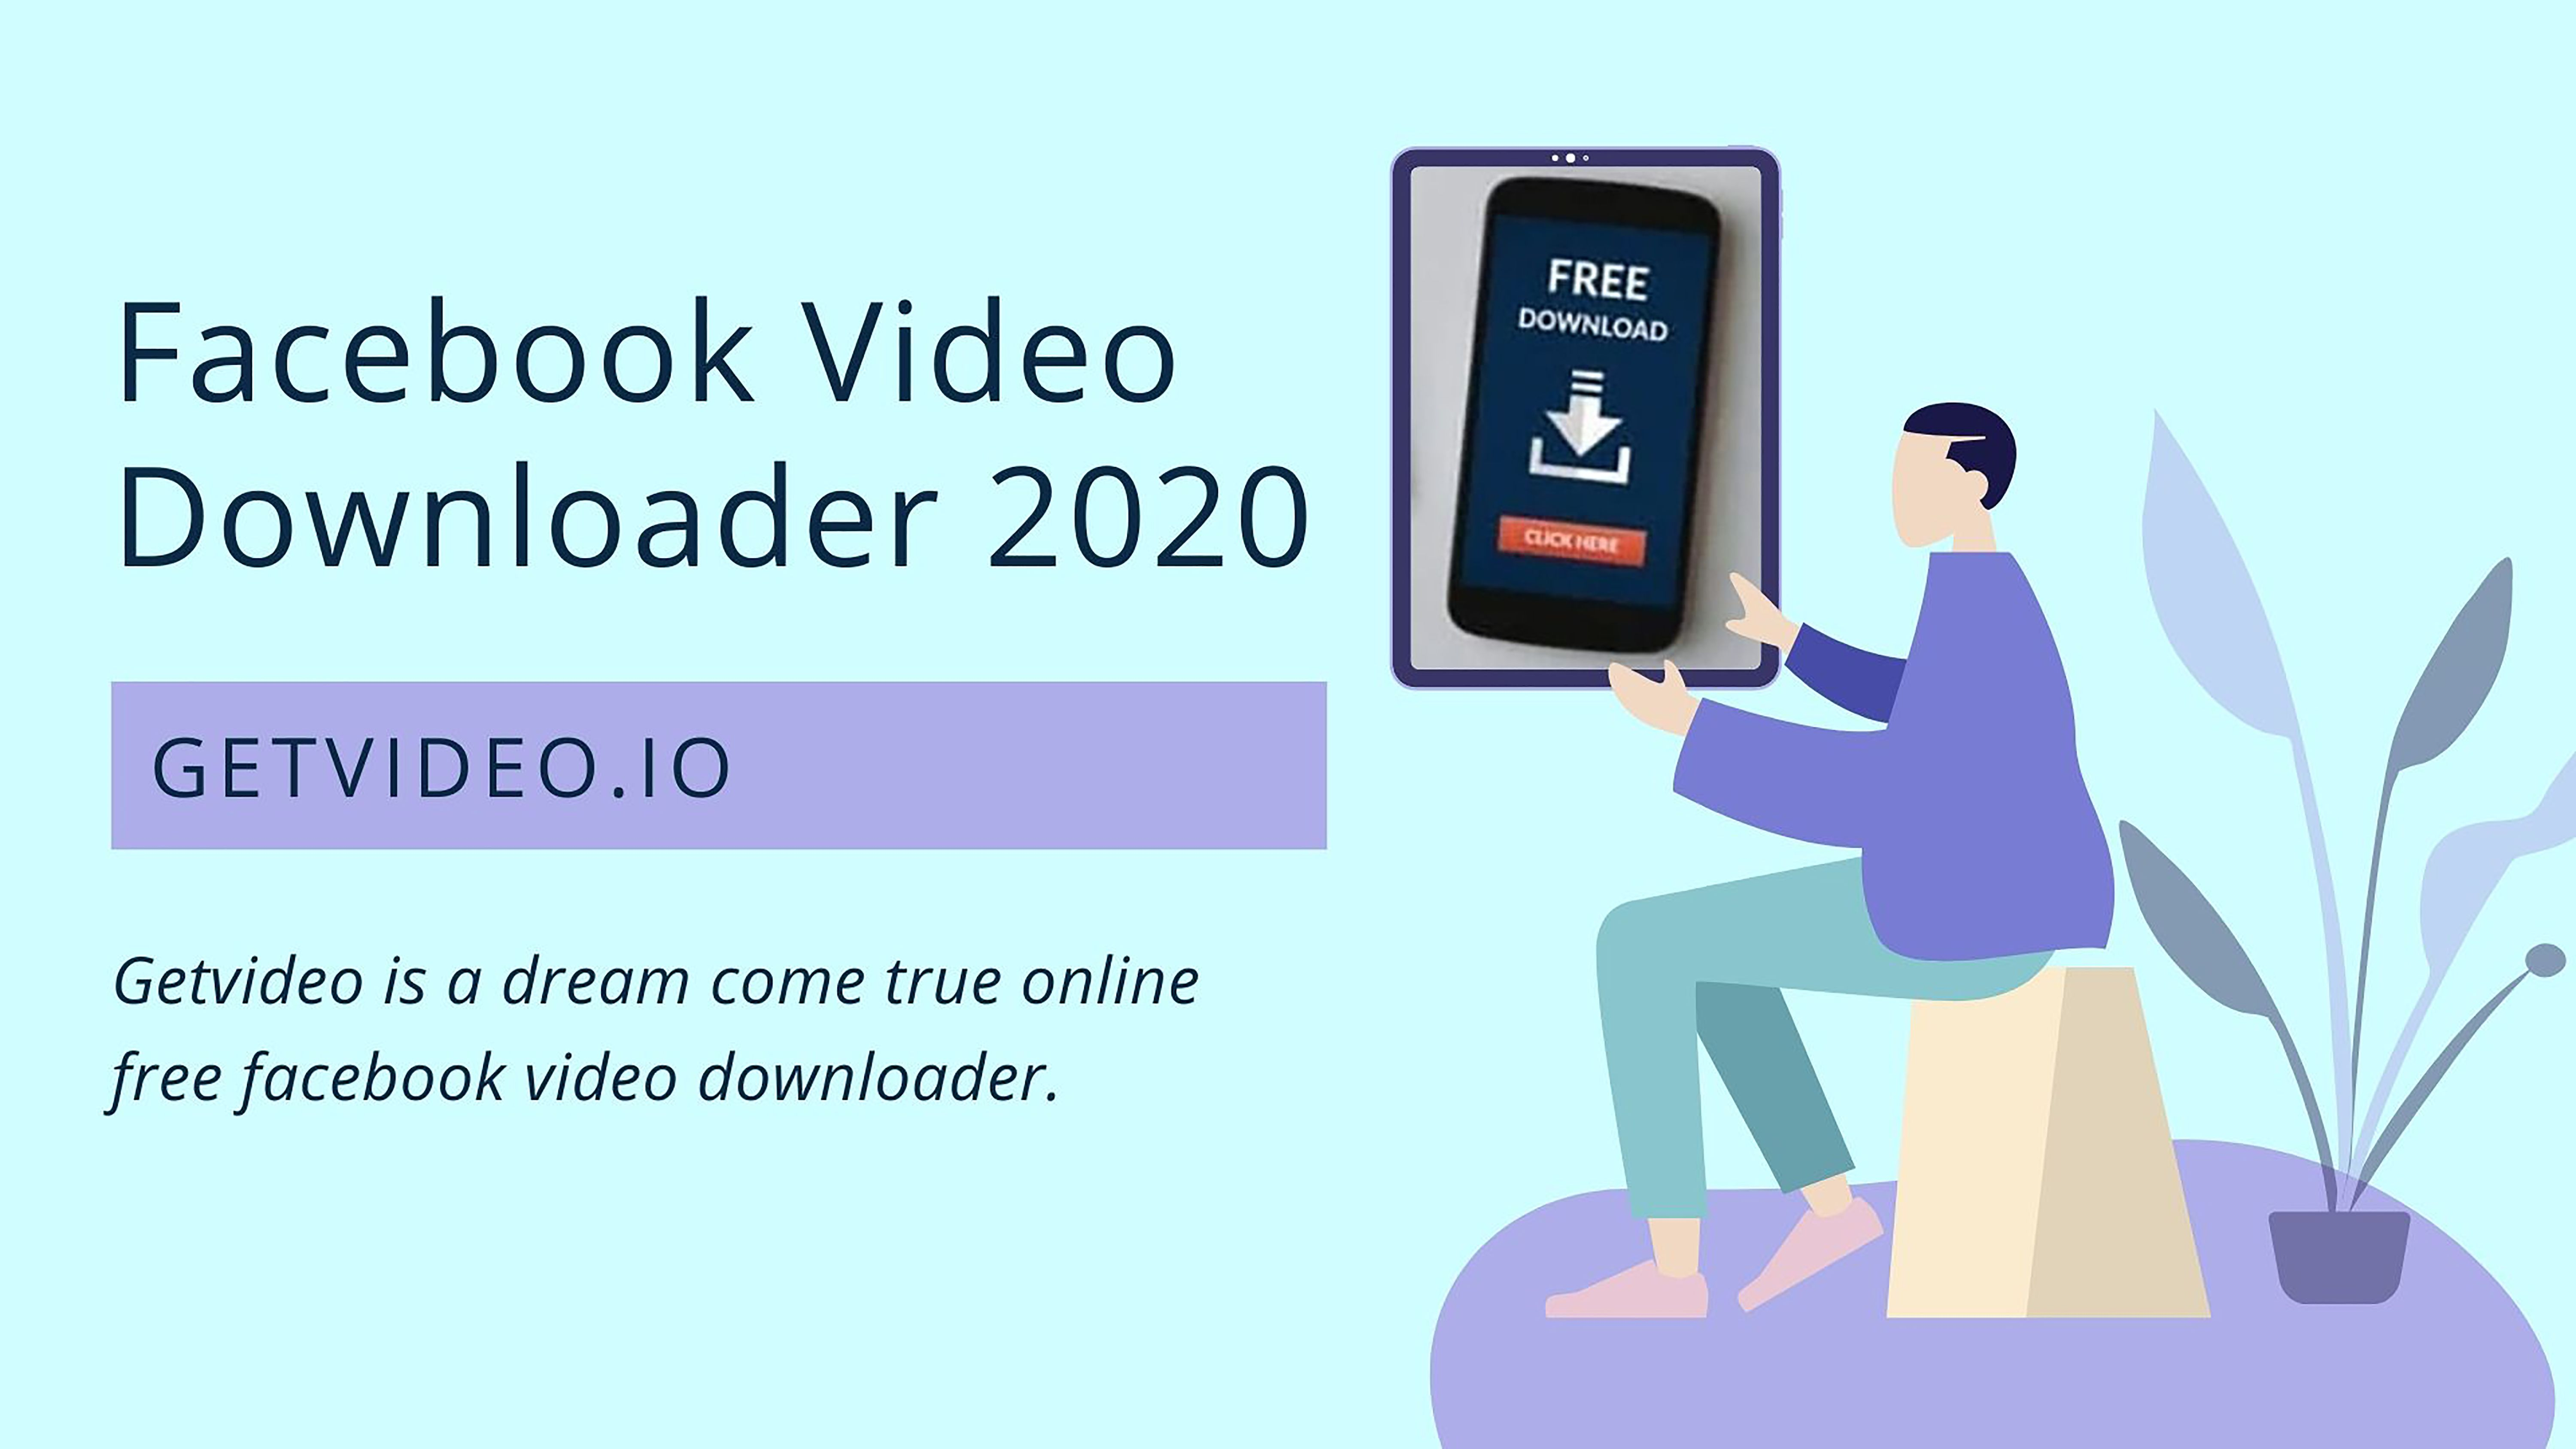 Getvideo is a dream come true online free Facebook_Video